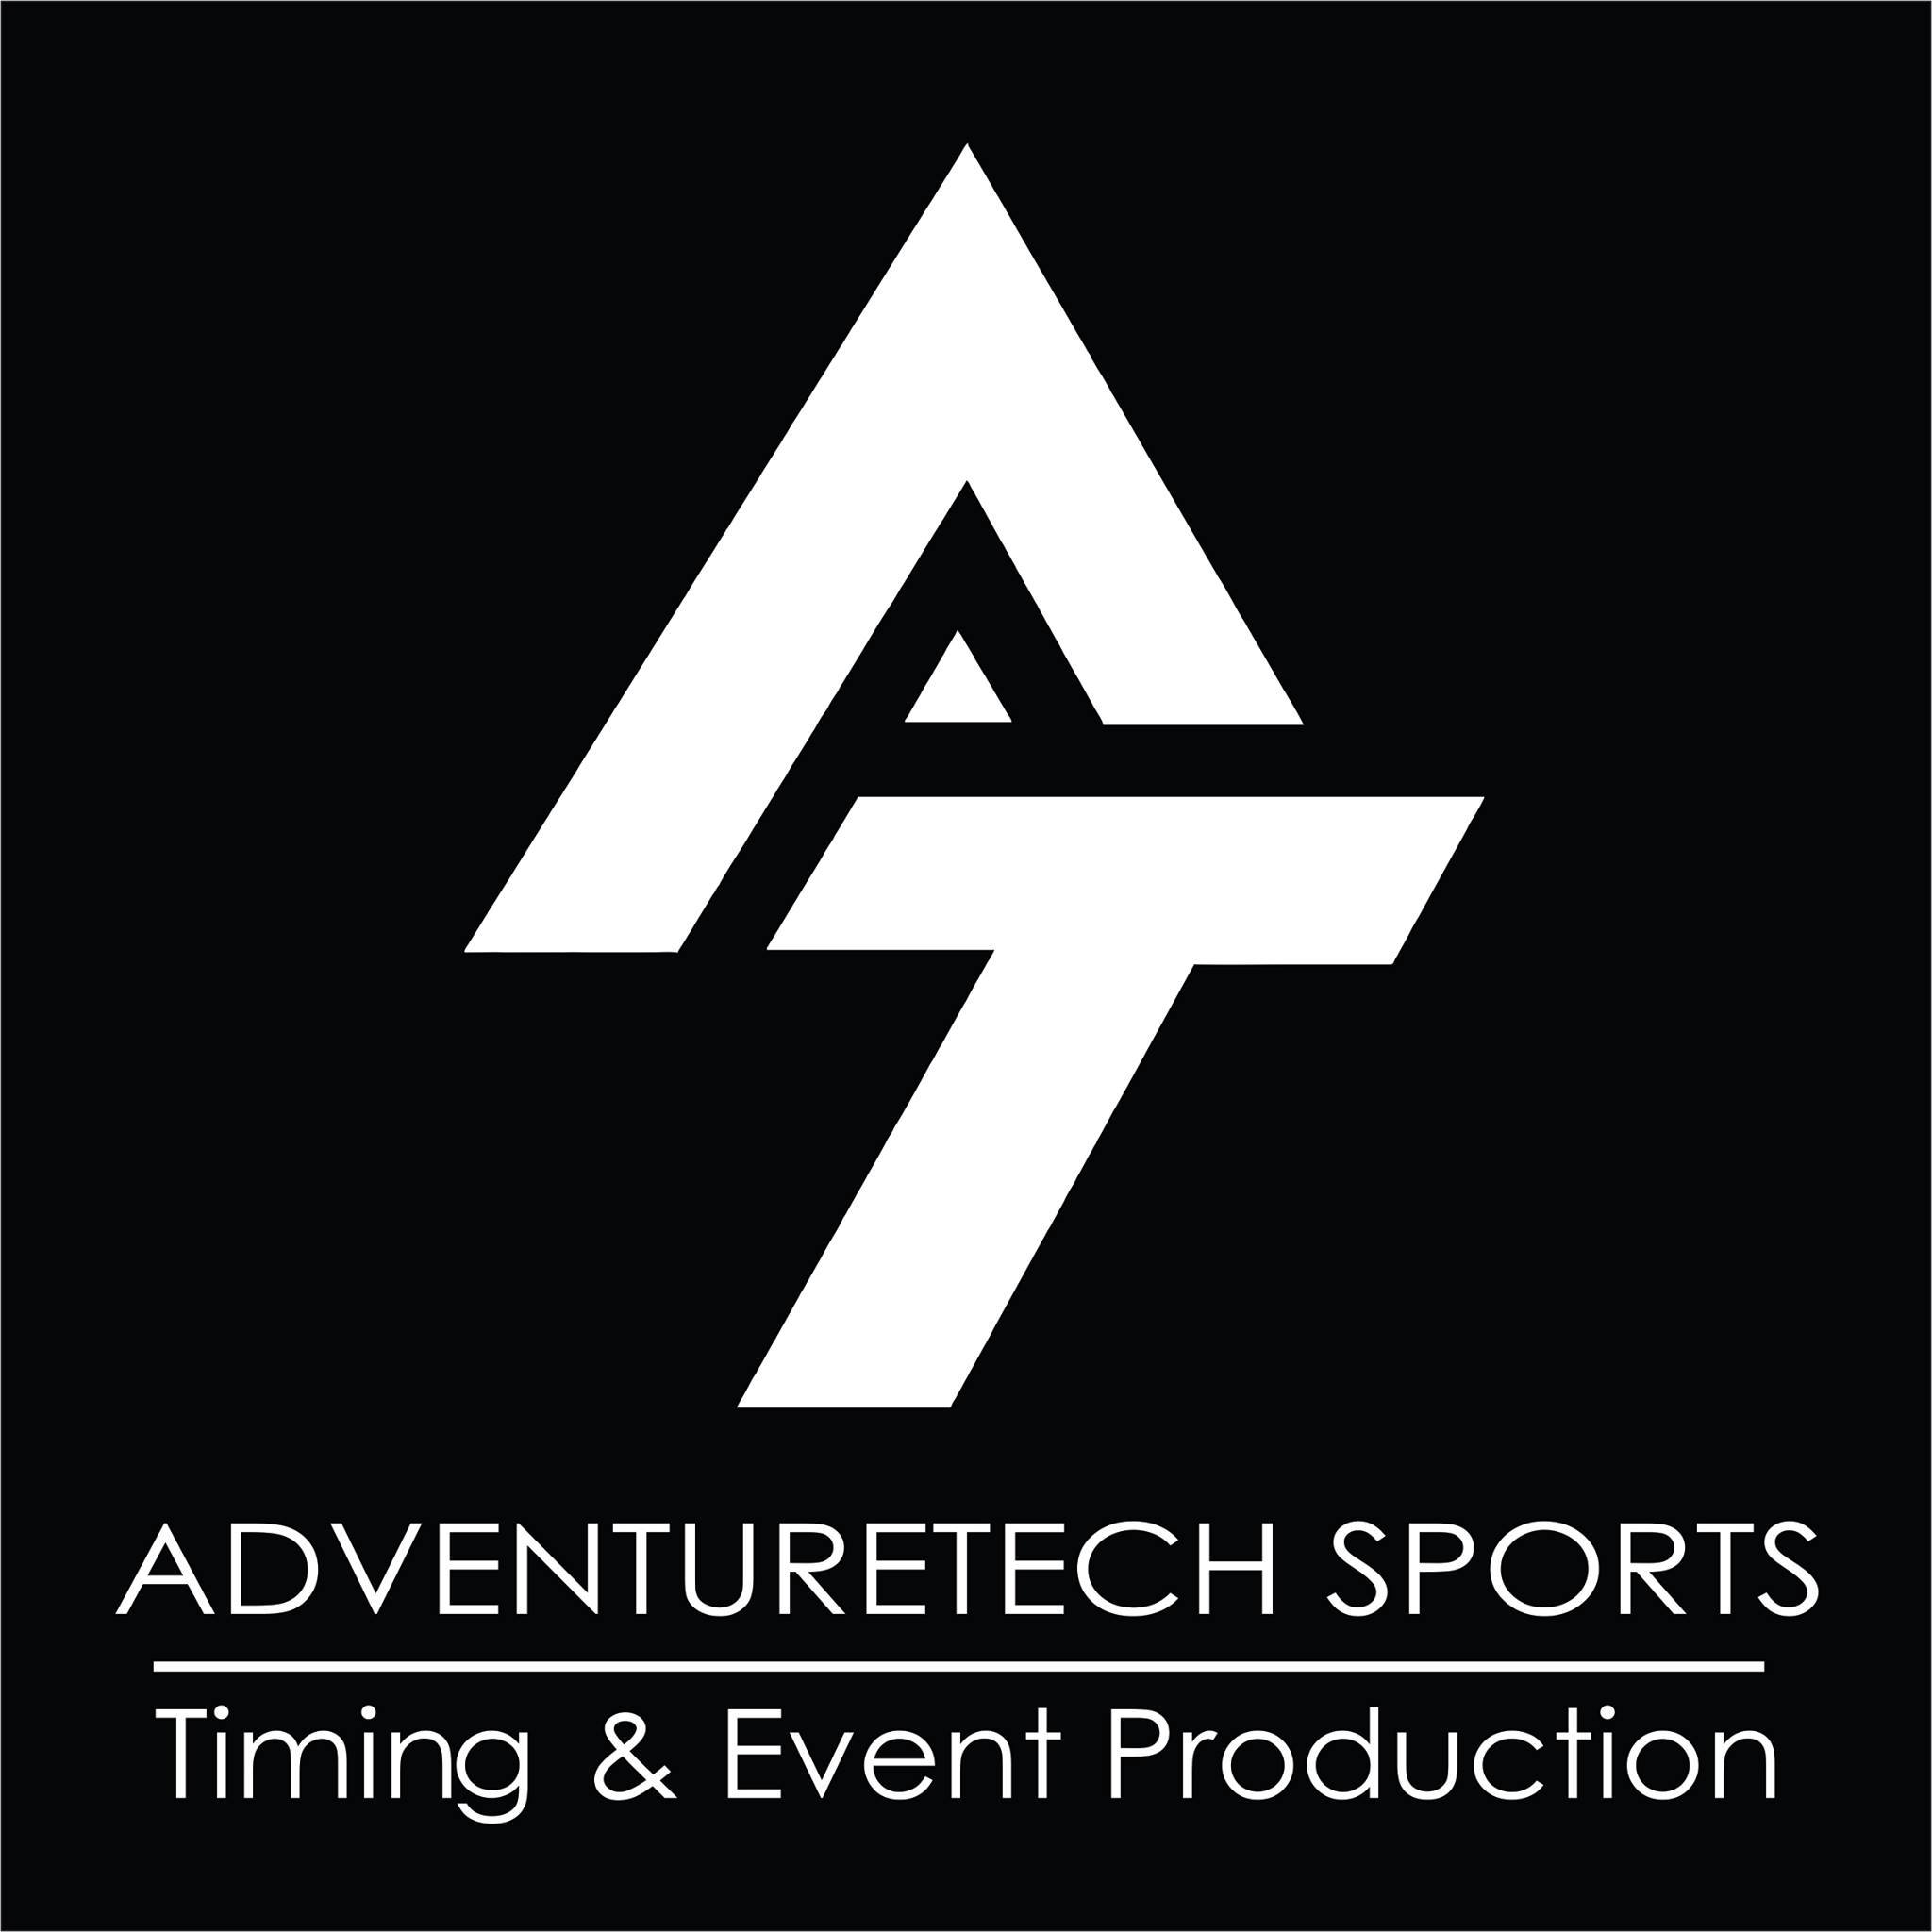 Adventuretech_logo.jpg